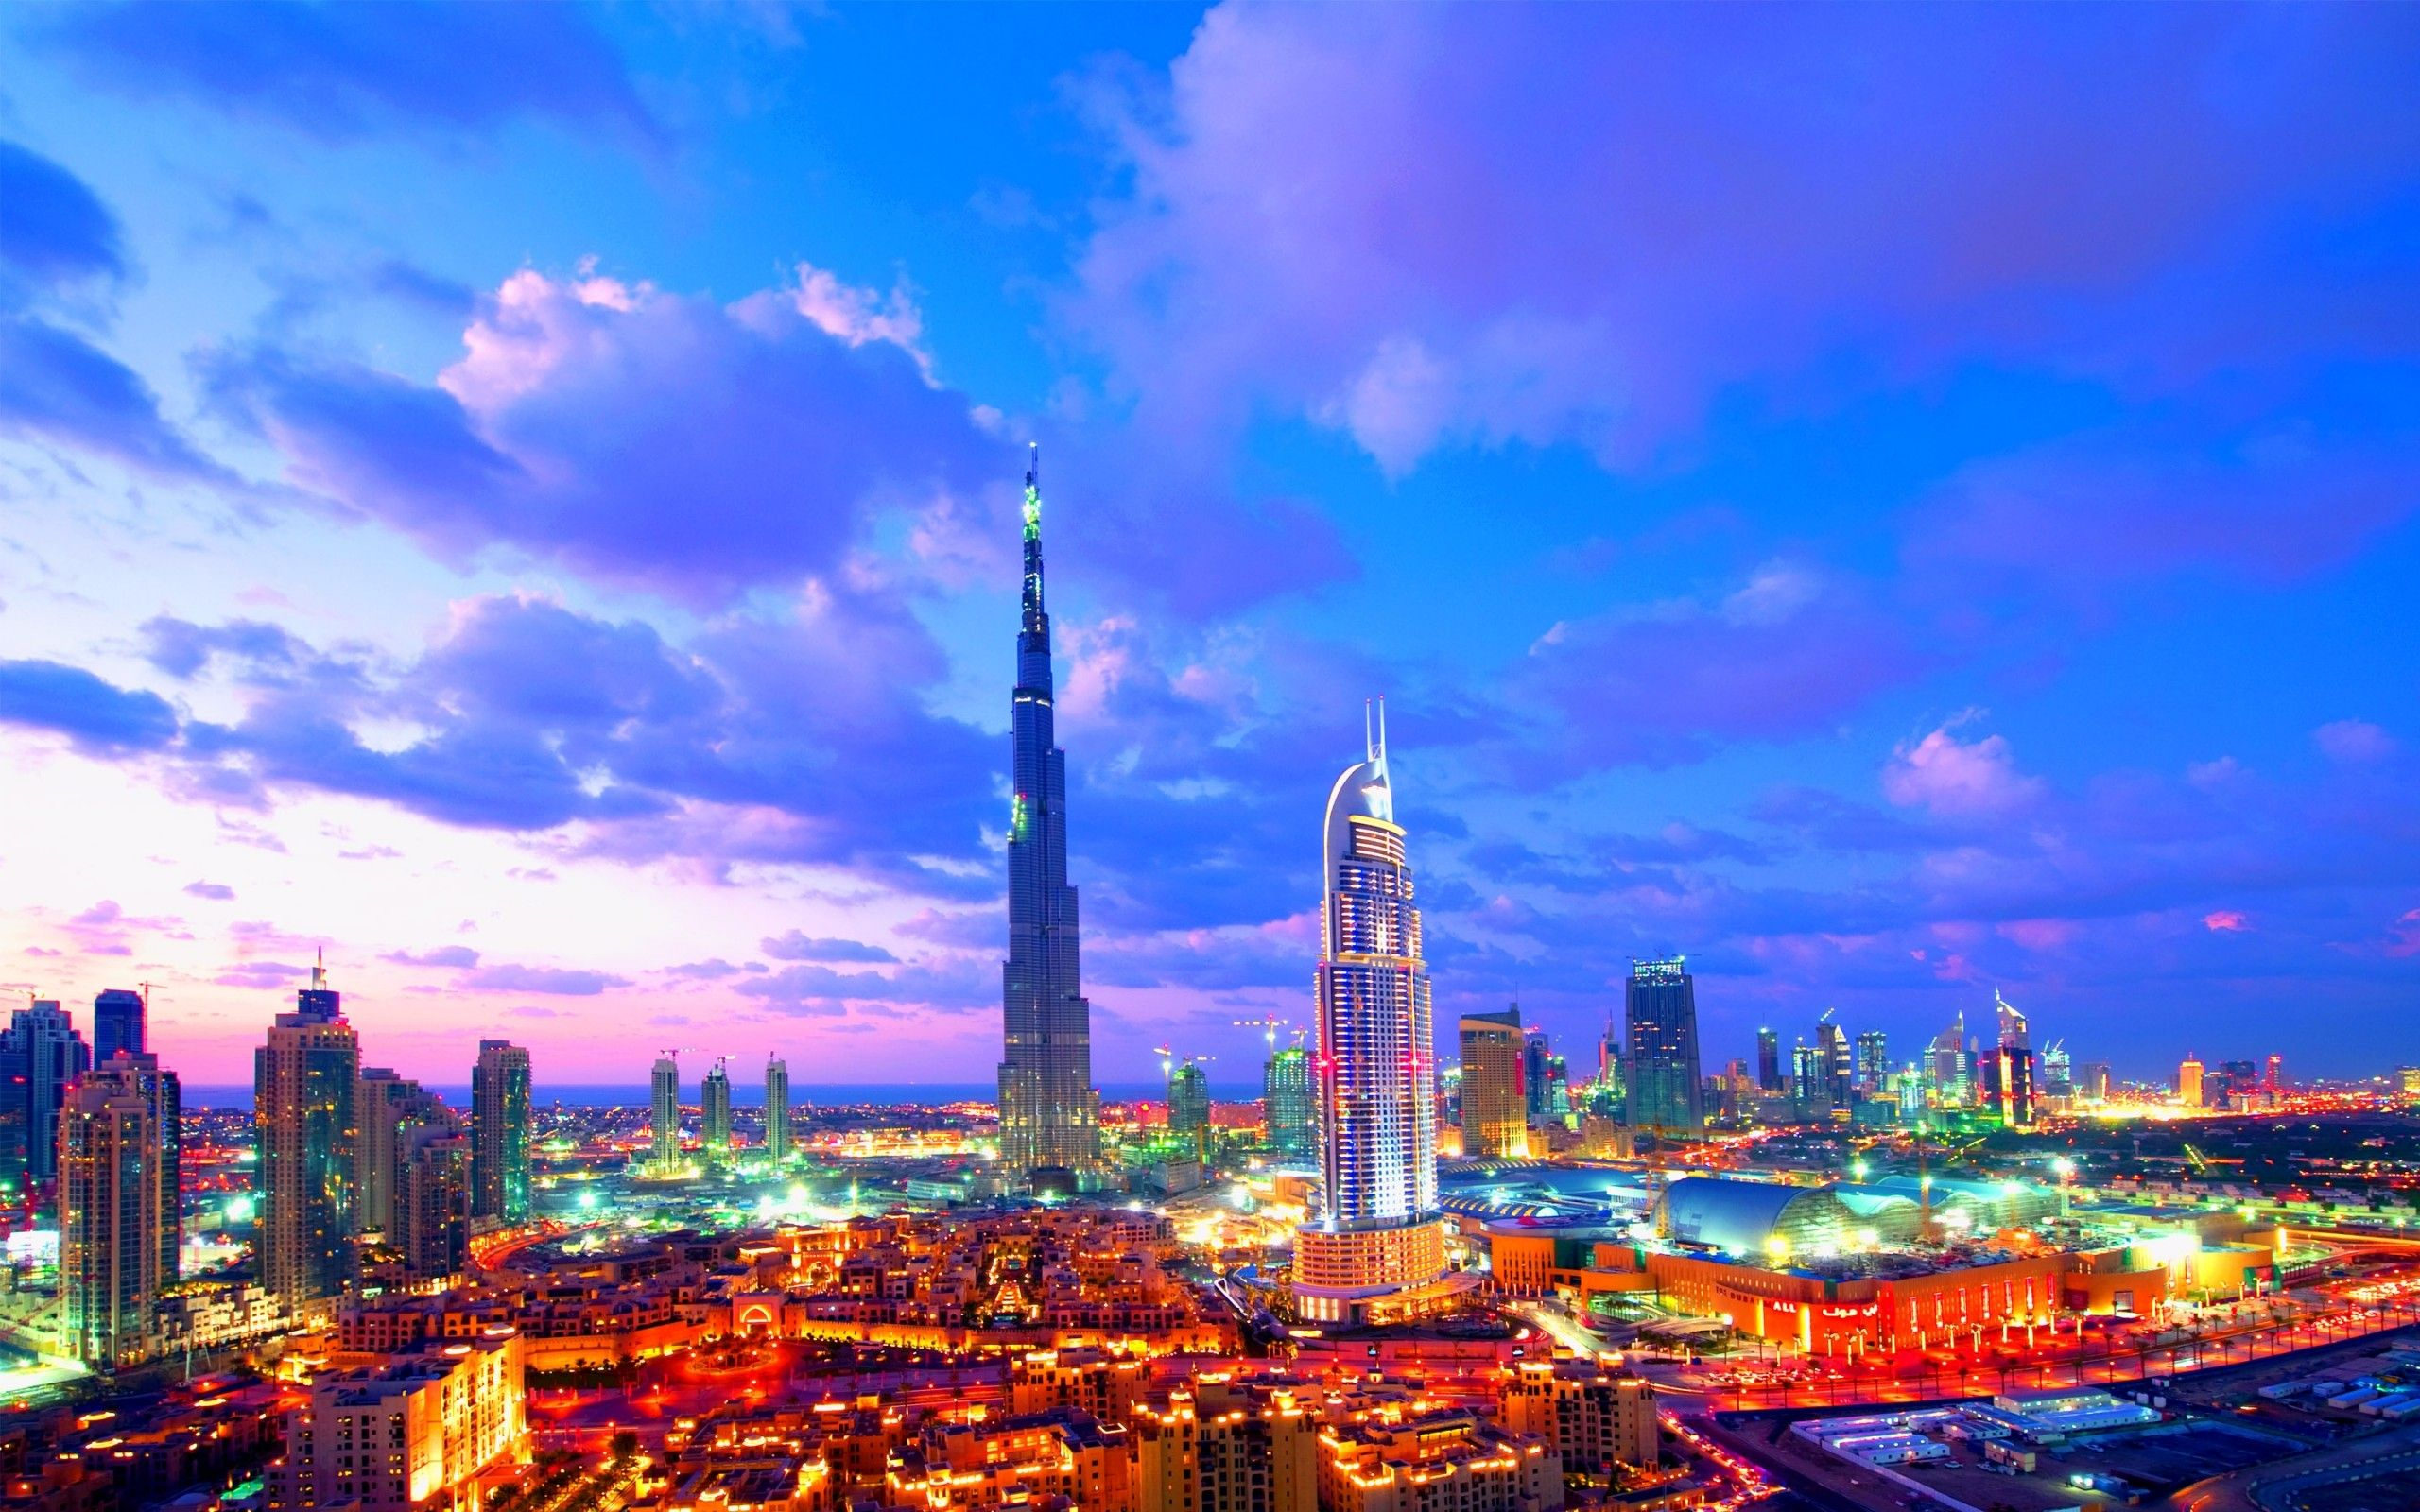 Sweet city lights architecture hd wallpapers hd for 3d wallpaper for home in dubai